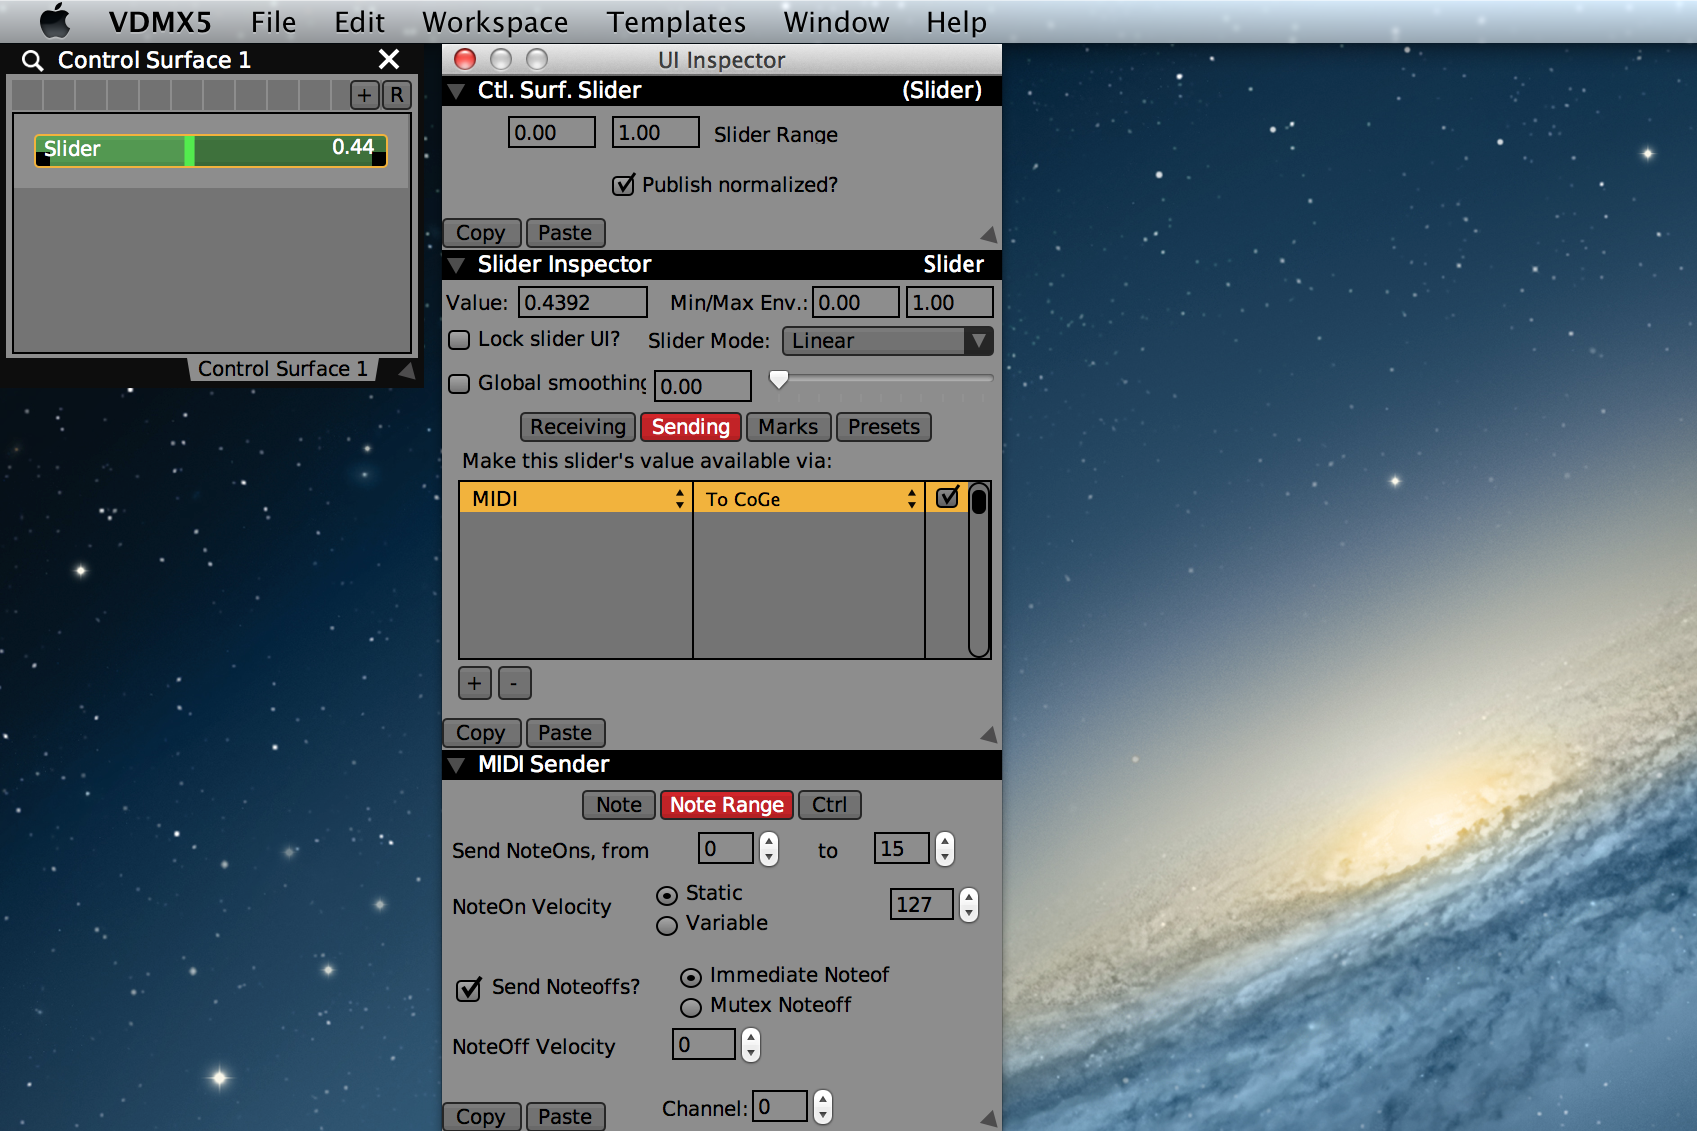 Slider 'Sending' tab with MIDI notes output to CoGe.